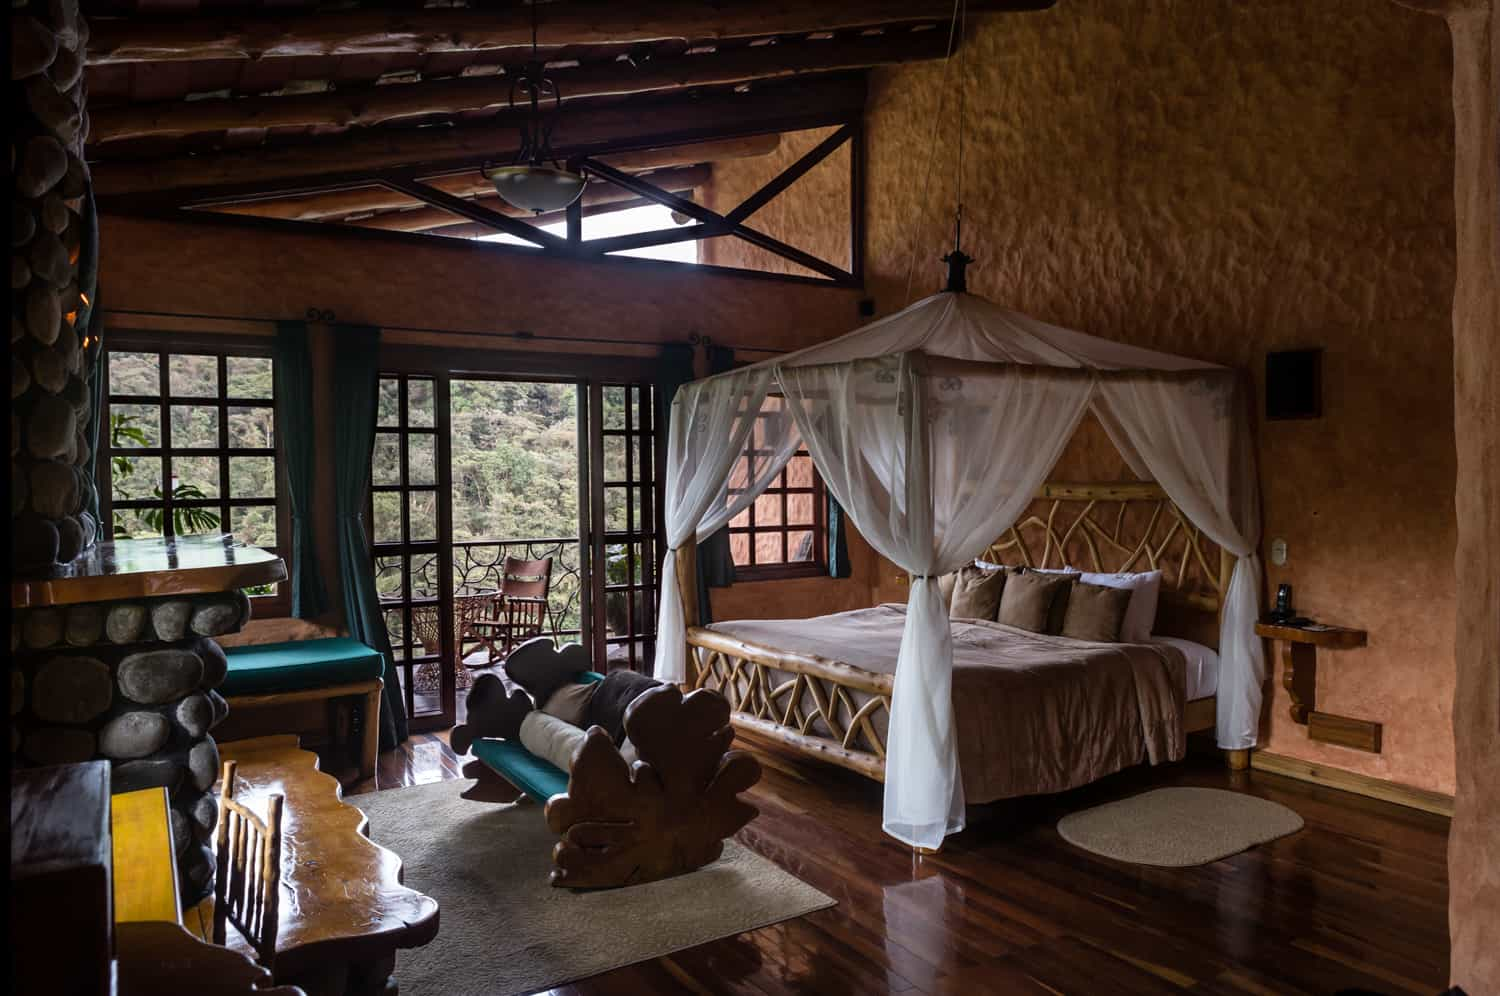 Image of canopy master bed in gorgeous honeymoon suite for newlyweds in Costa Rica.